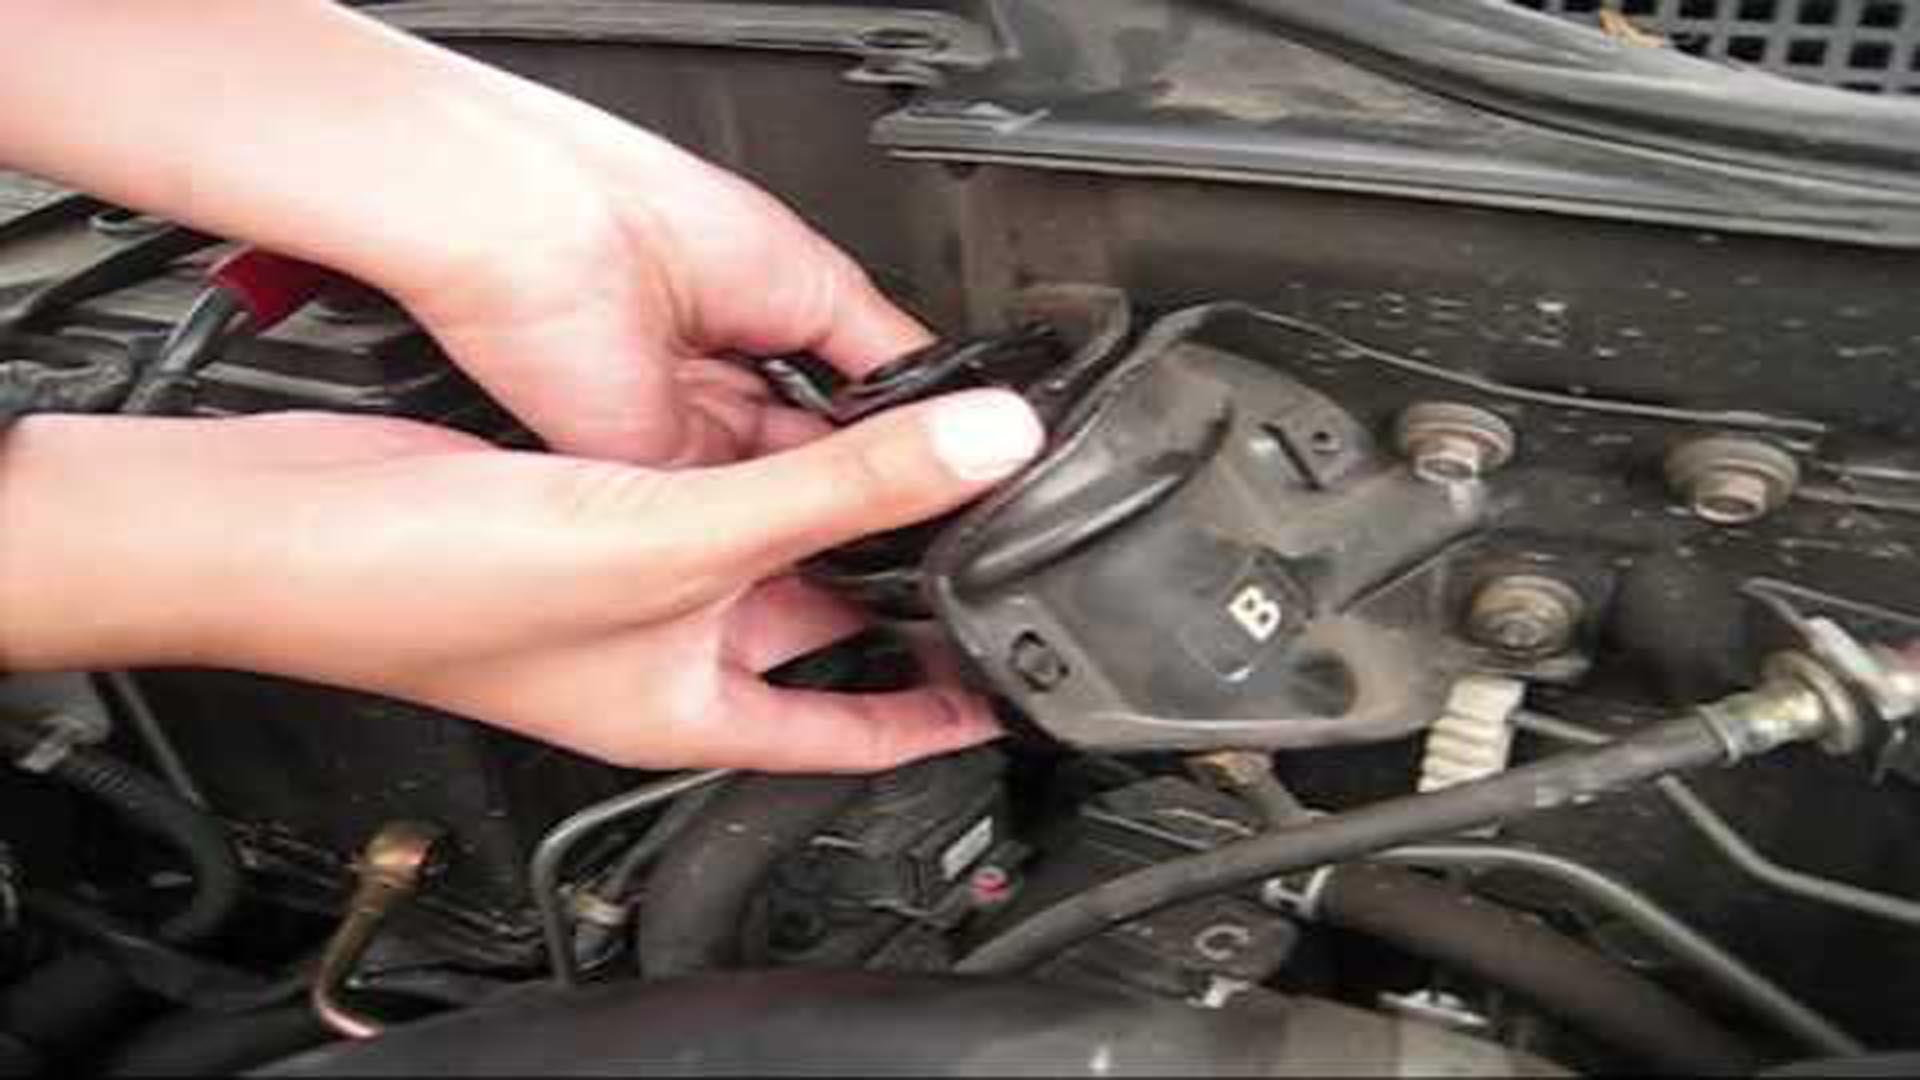 honda civic: how to replace fuel filter | honda-tech  honda-tech